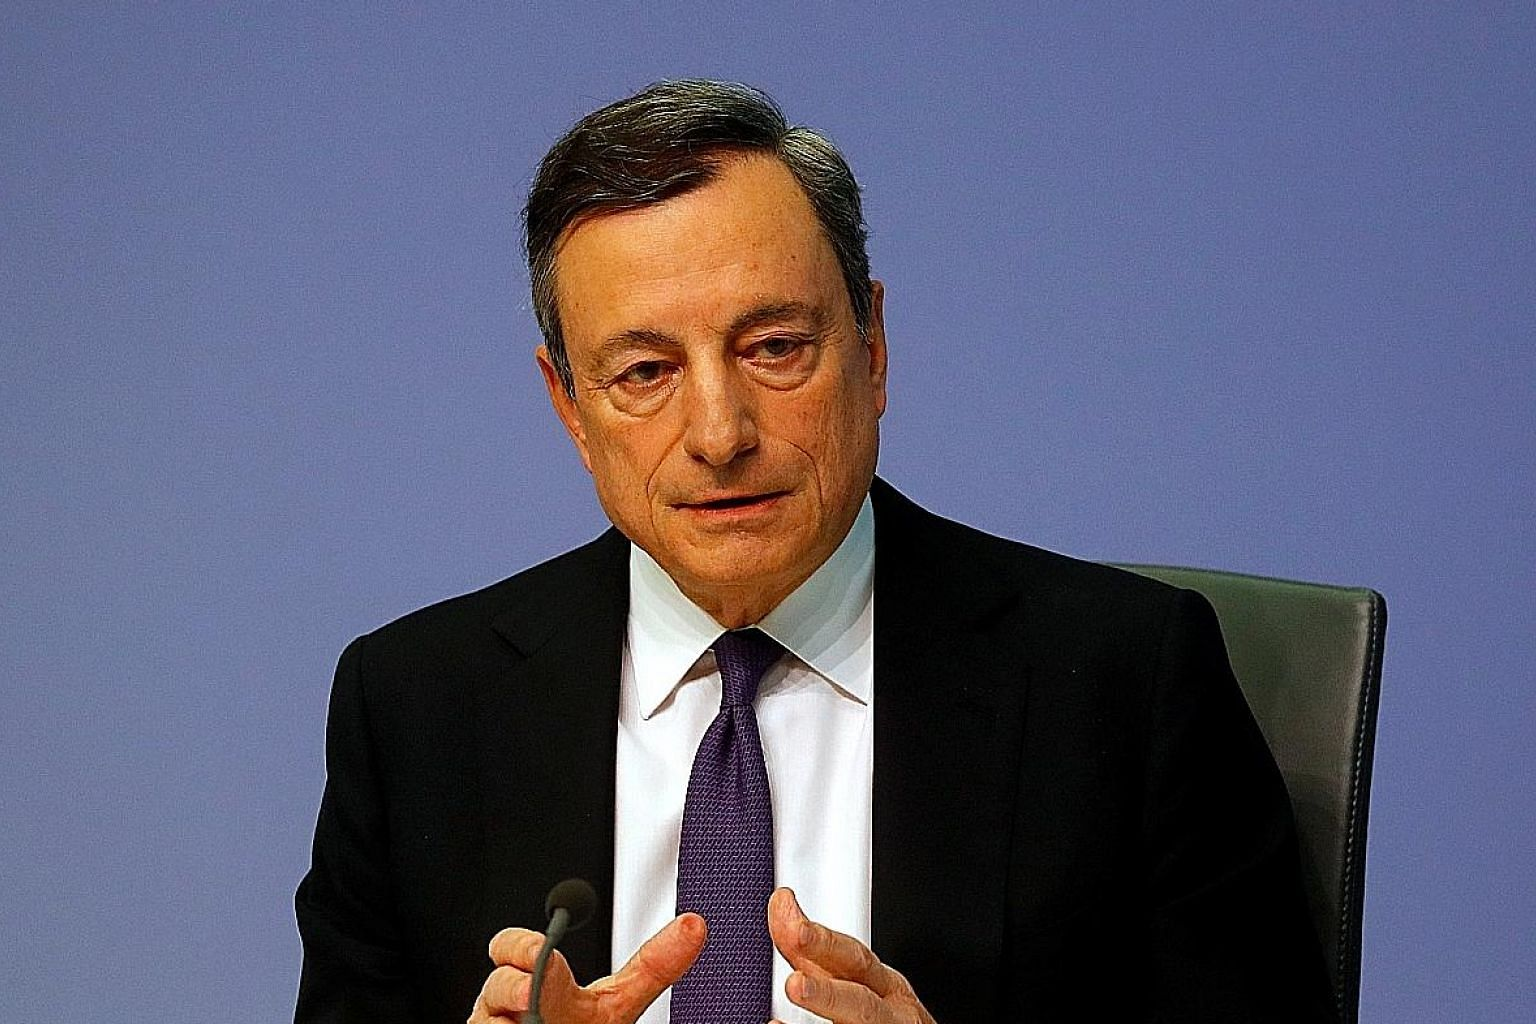 ECB president Mario Draghi is expected to announce today an end to the institution's asset-purchase programme.